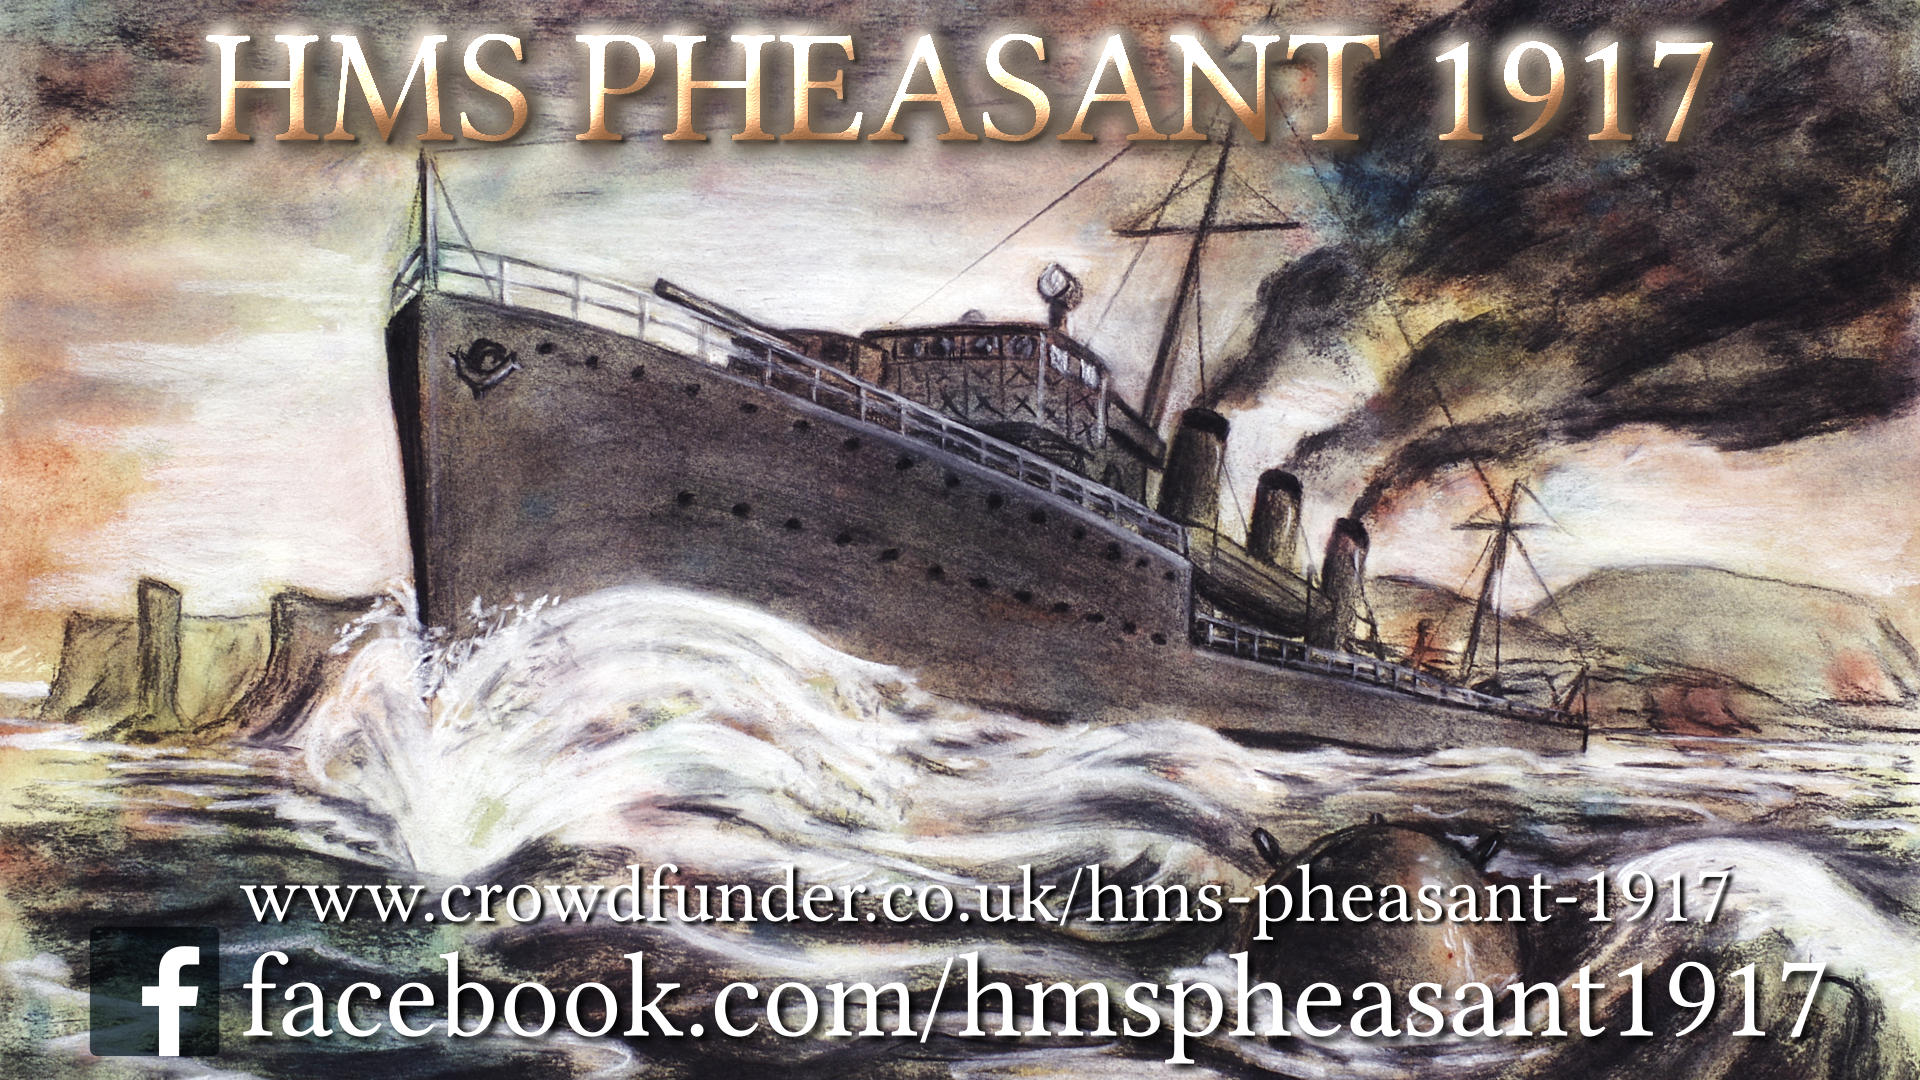 HMS Pheasant 1917 exhibition crowdfunder visit https://www.crowdfunder.co.uk/hms-pheasant-1917